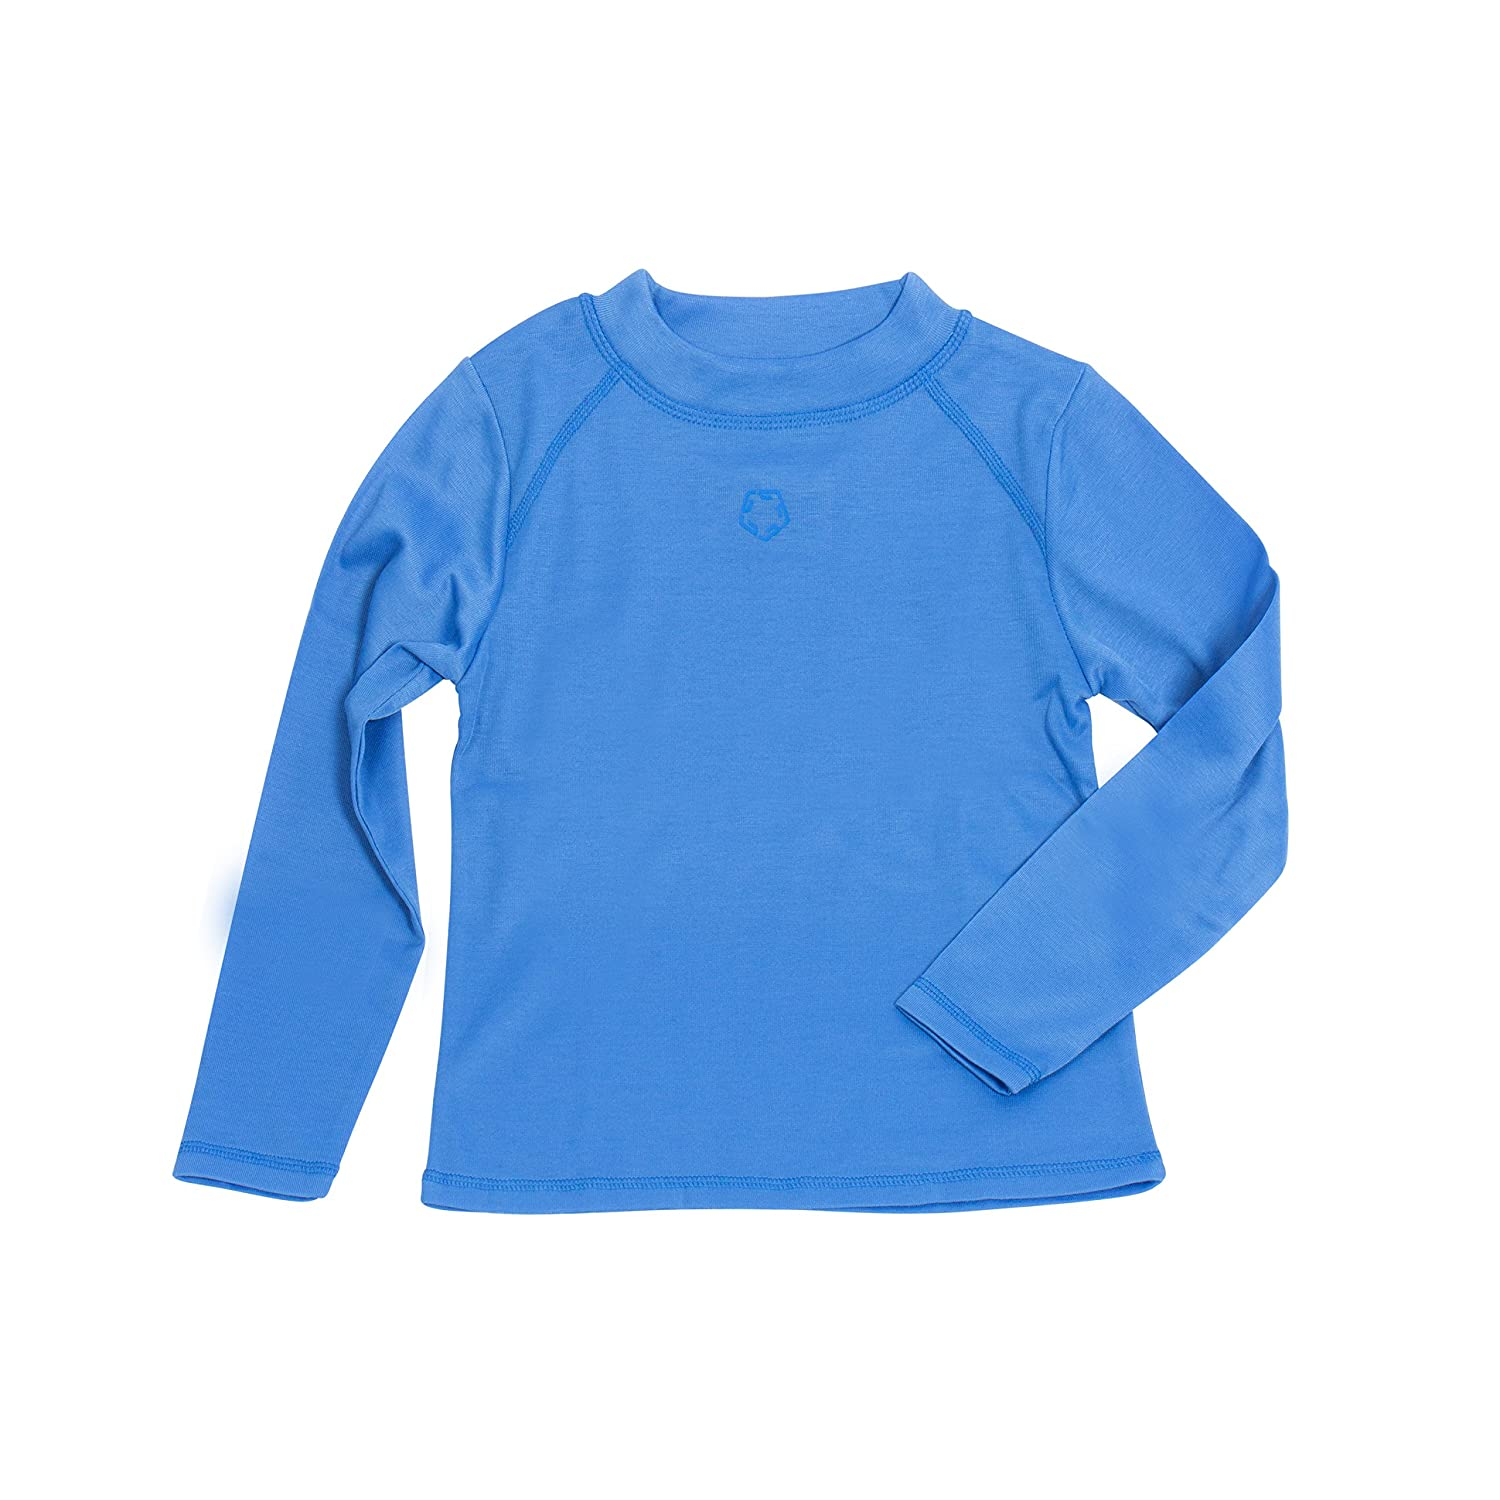 Gregster Kid/'s Long Sleeve Top and Pants Thermal Underwear Set Ski Base Layer for Children